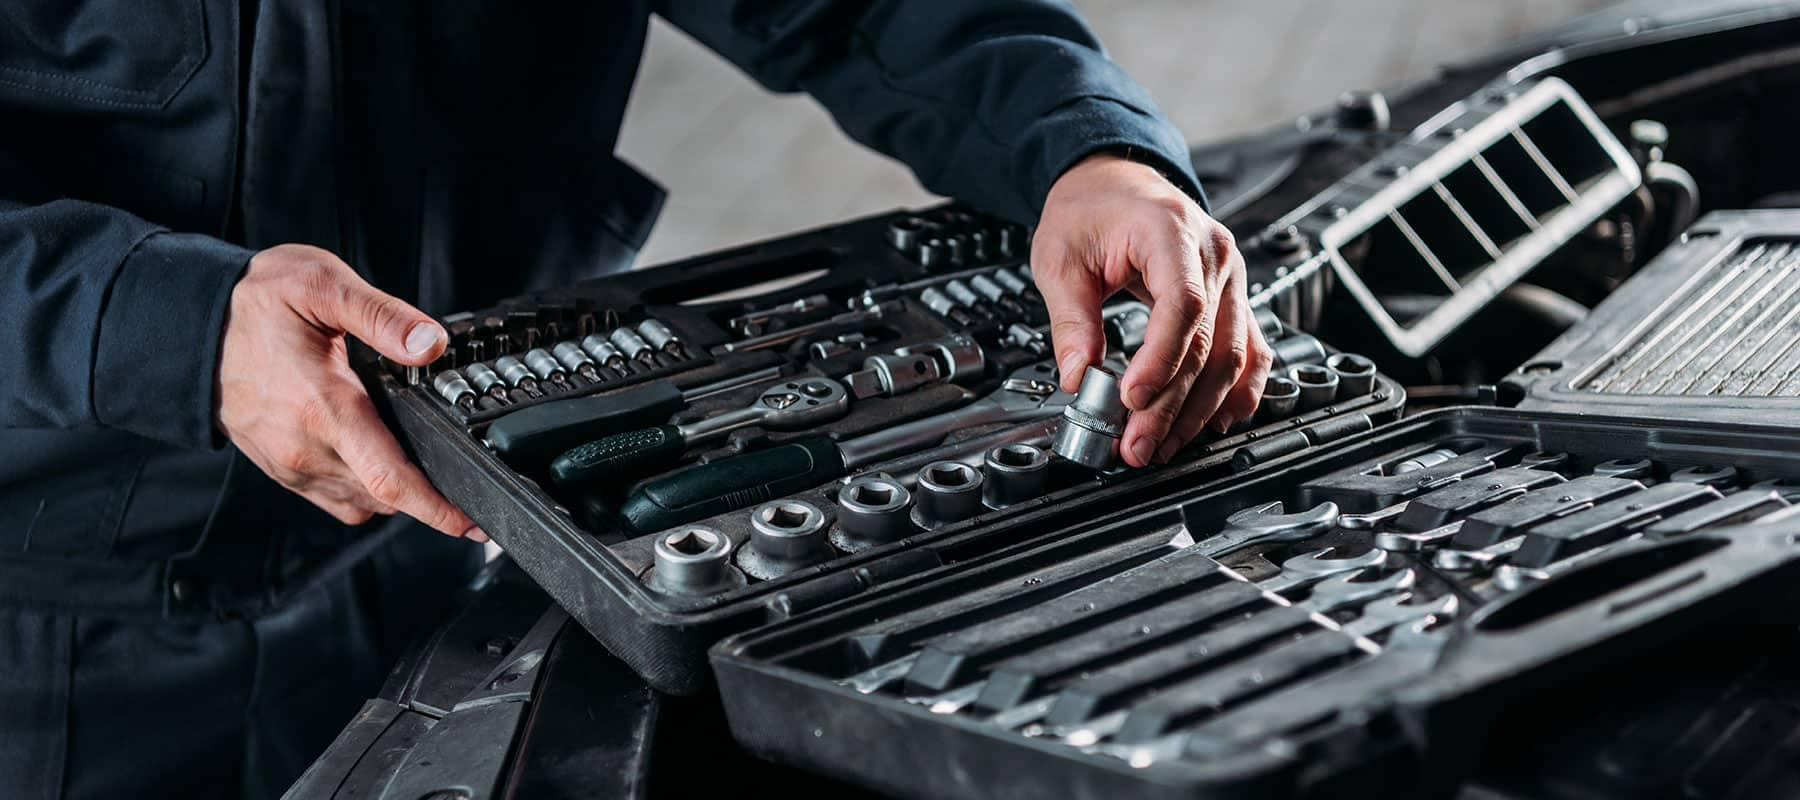 service technician selects bolt from case